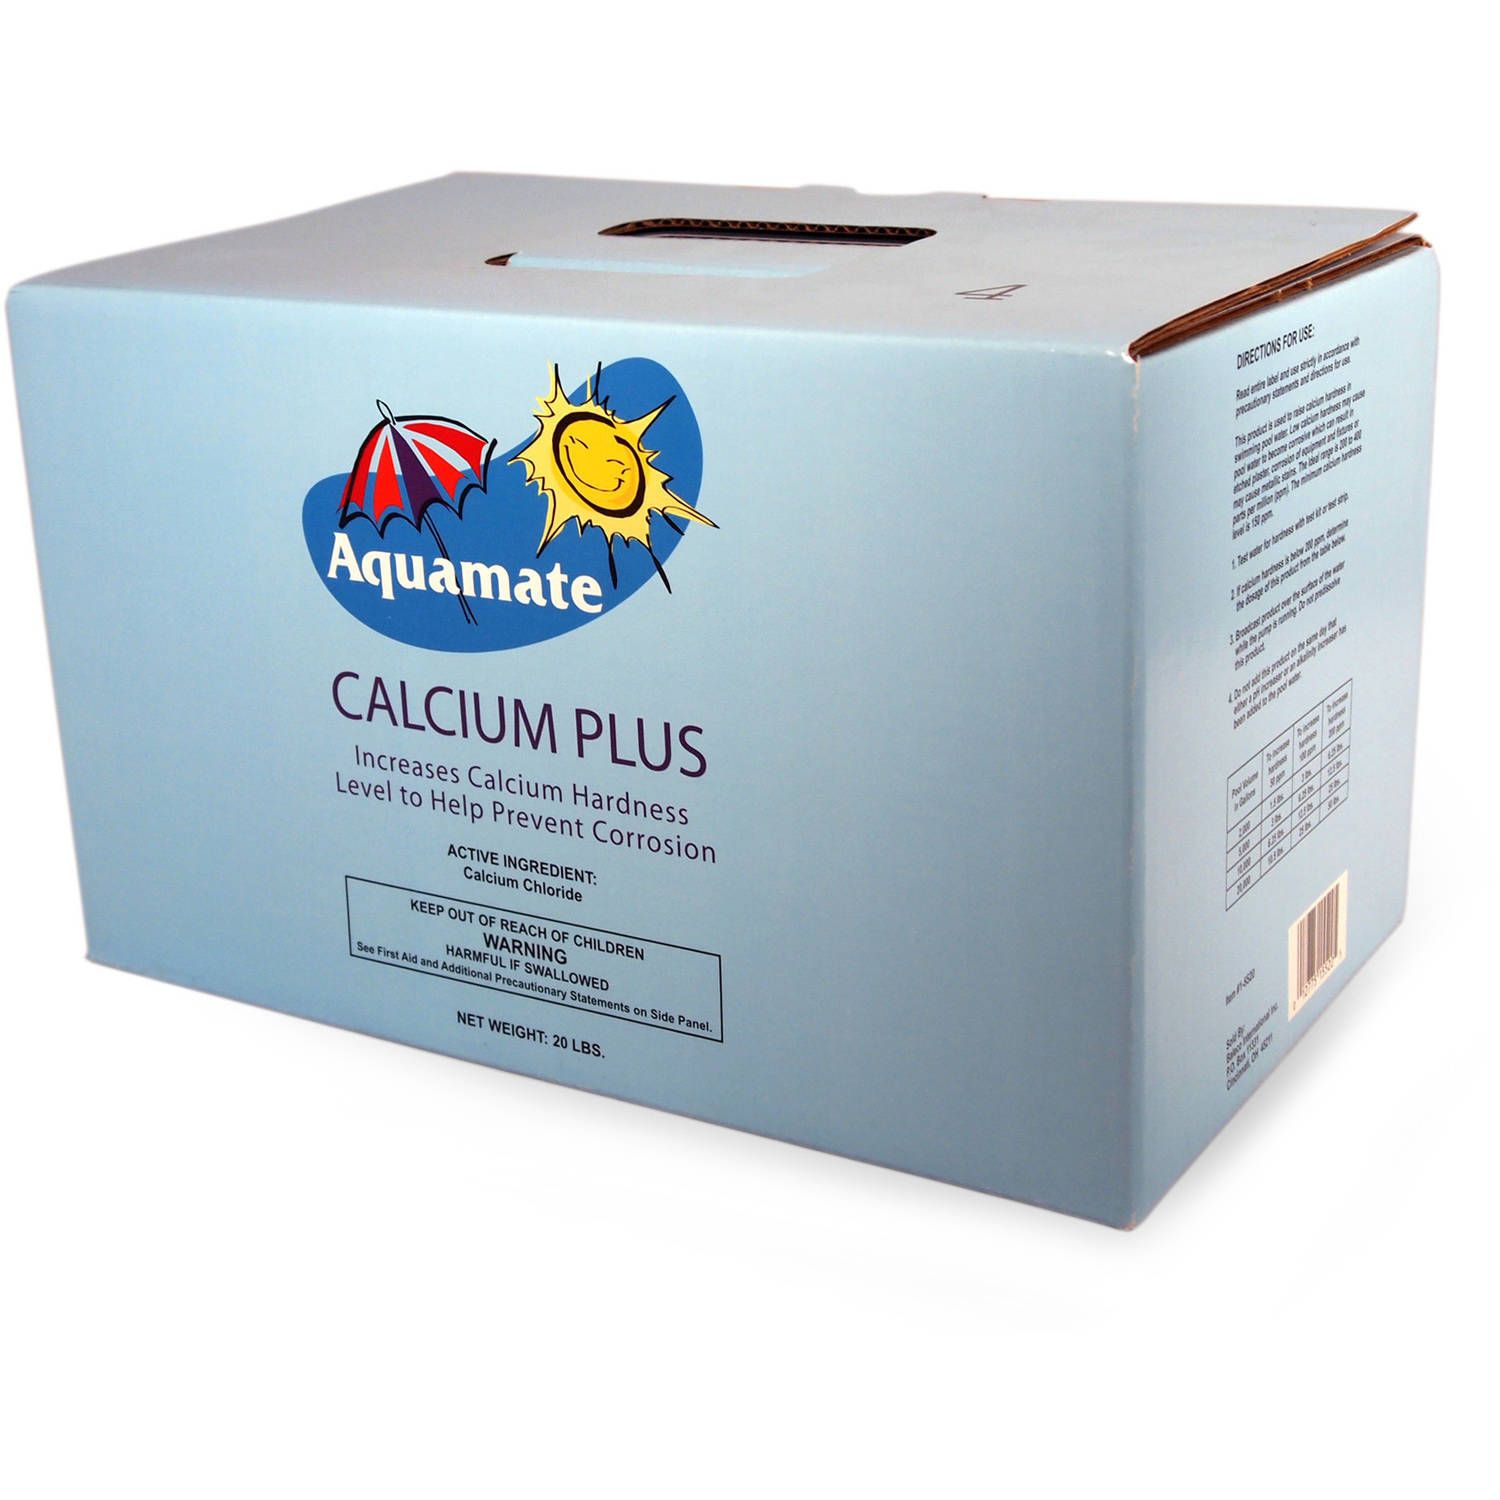 Aquamate Calcium Plus for Swimming Pools, 20 lbs